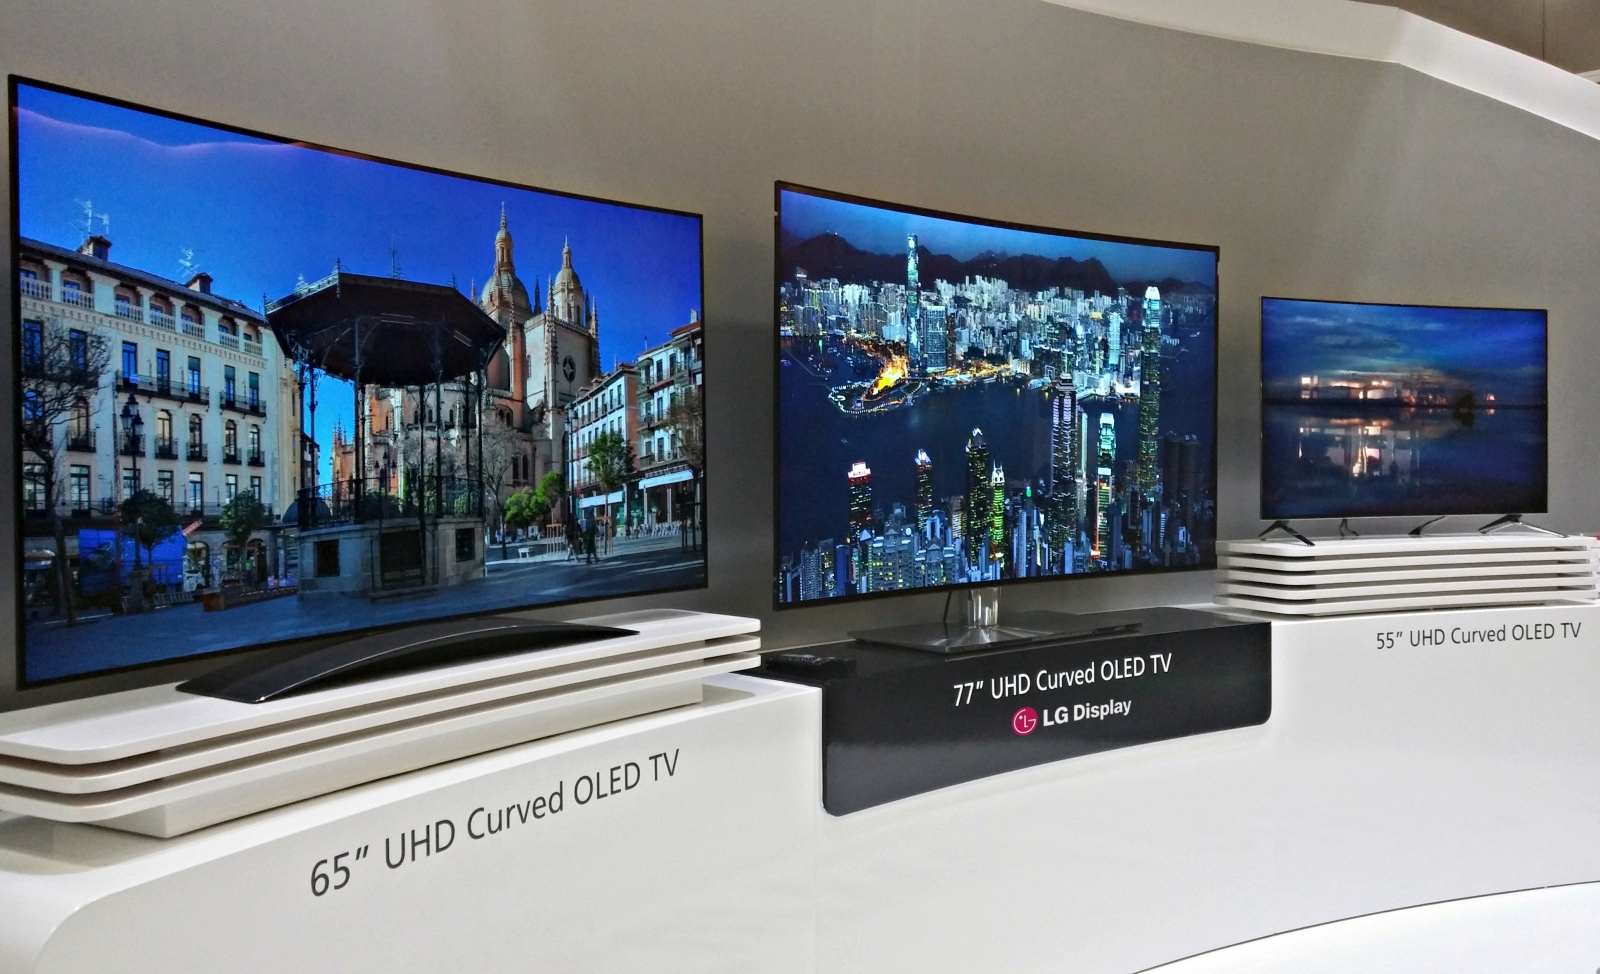 lg tv 2015. ces 2015: lg bets big on oled tvs with flexible display and $600m investment lg tv 2015